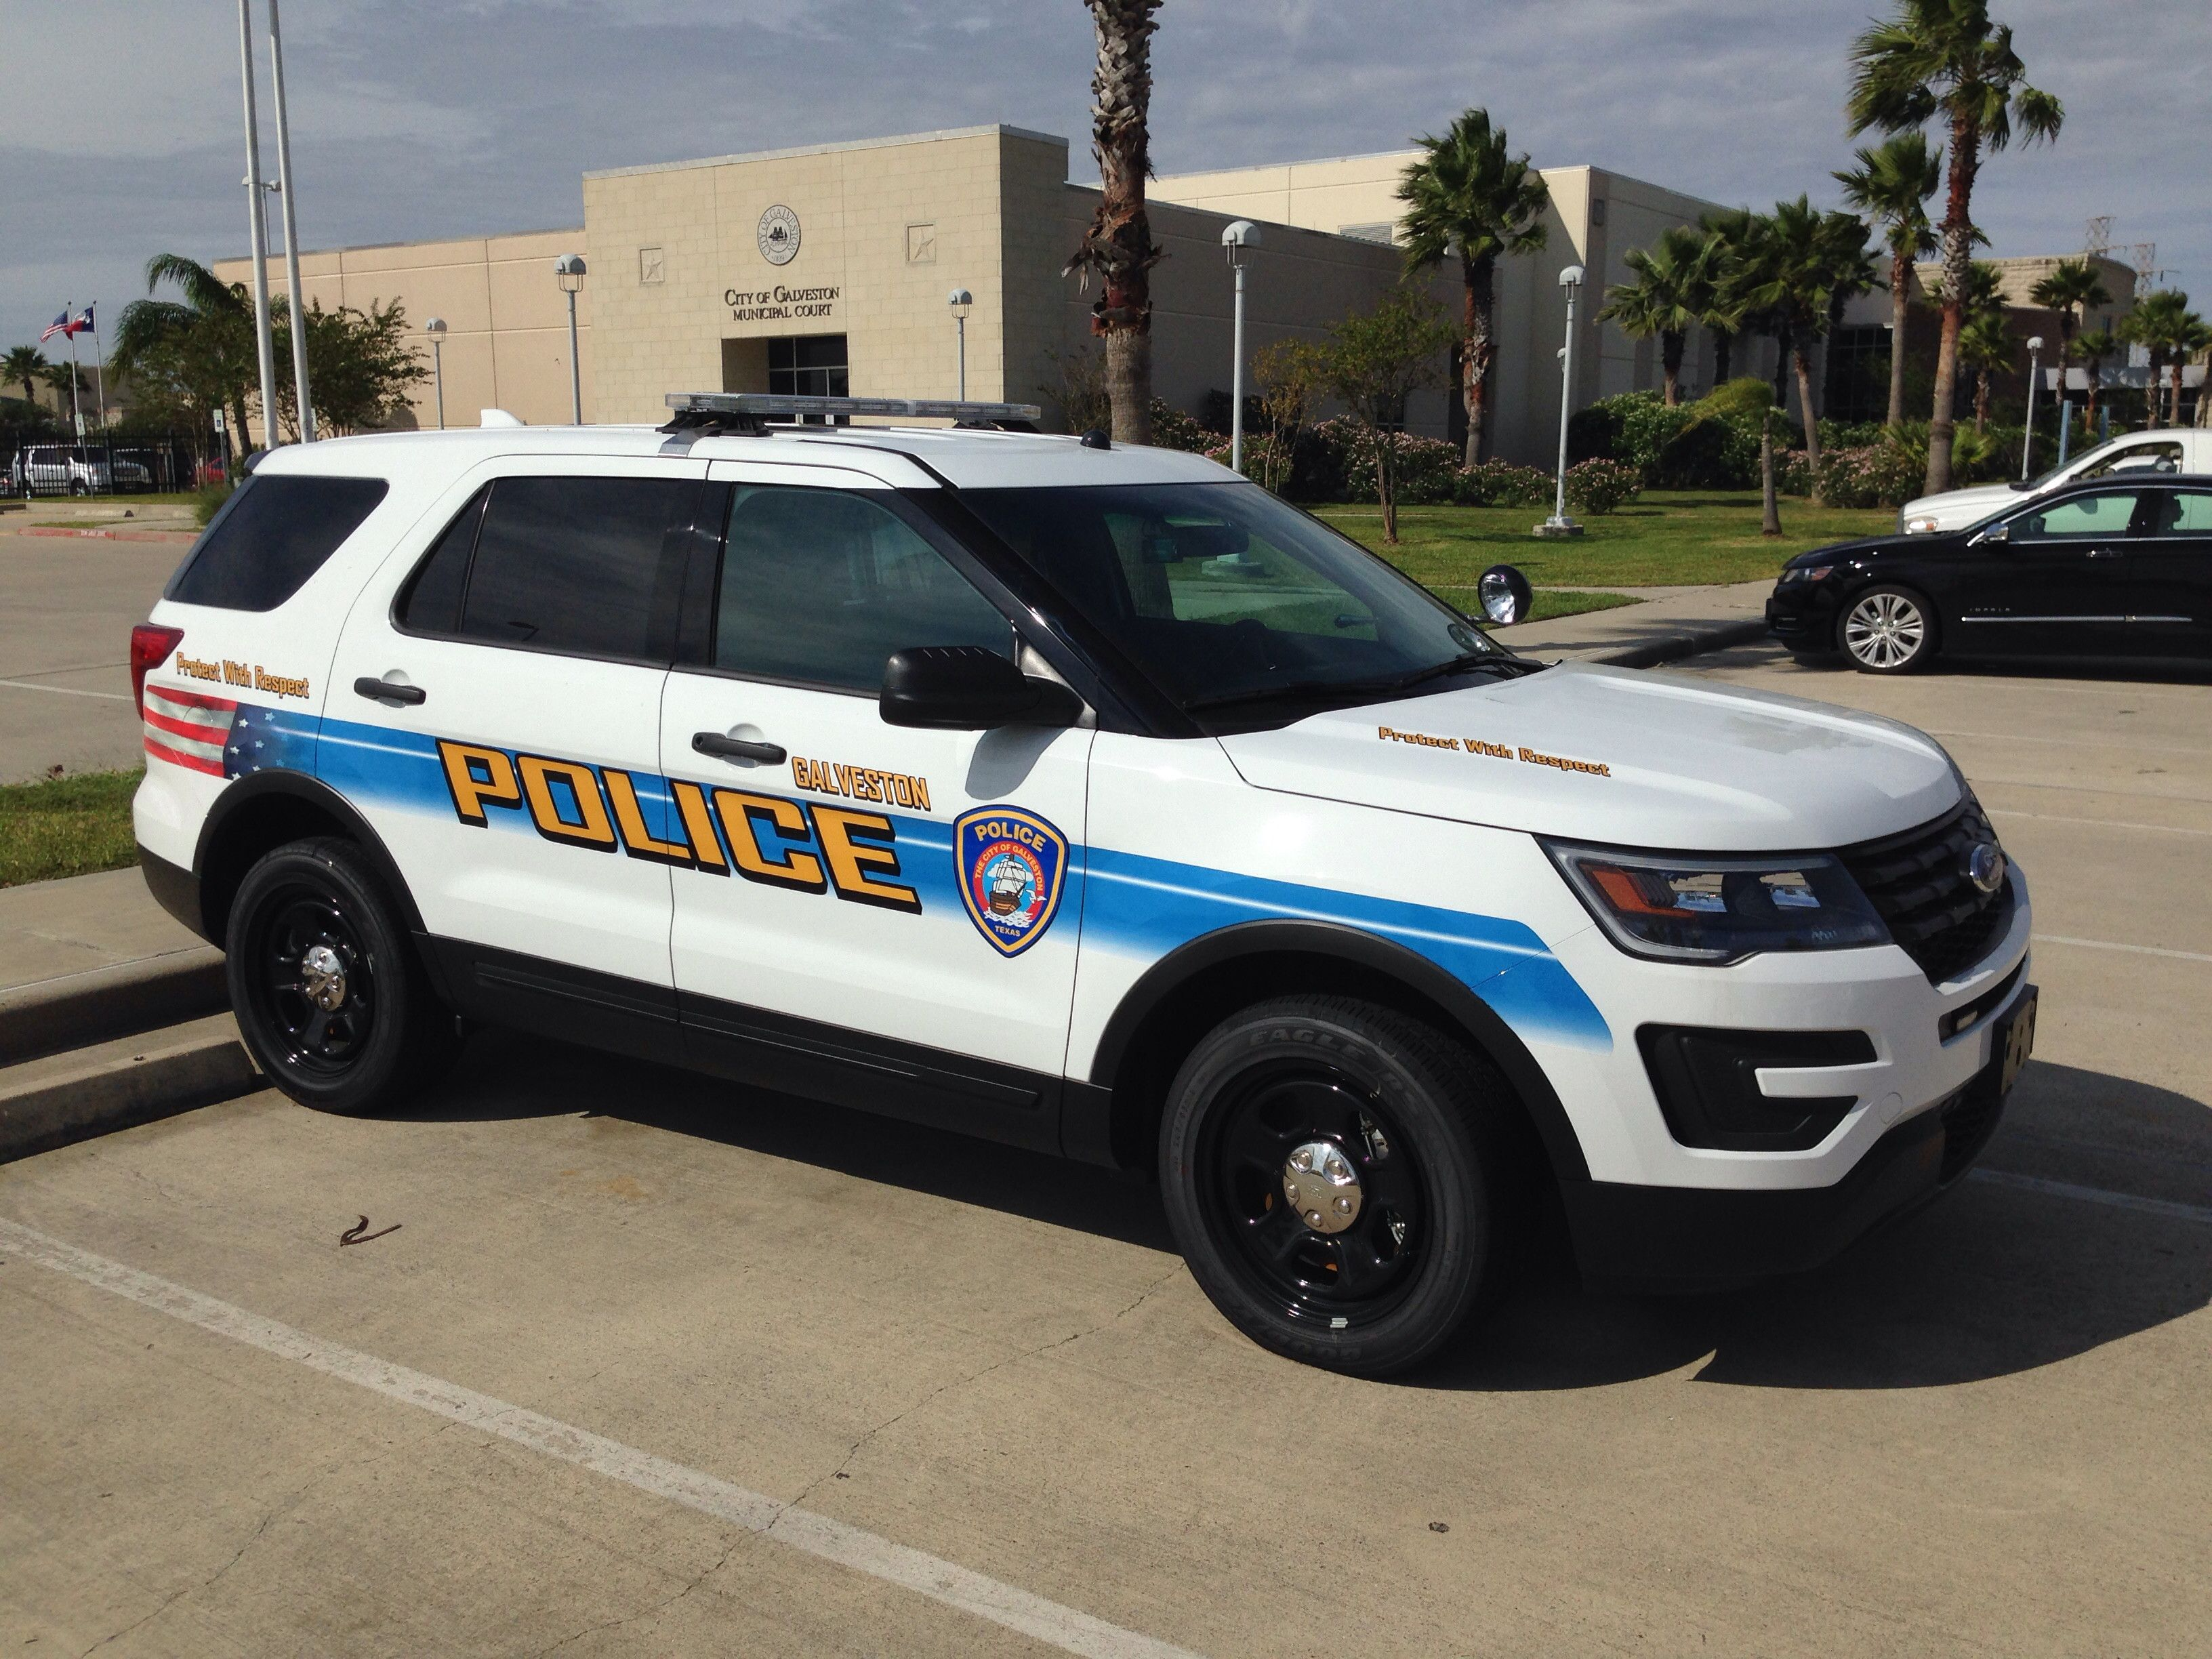 Galveston Police Department Ford Police Interceptor Suv Ford Police Old Police Cars Police